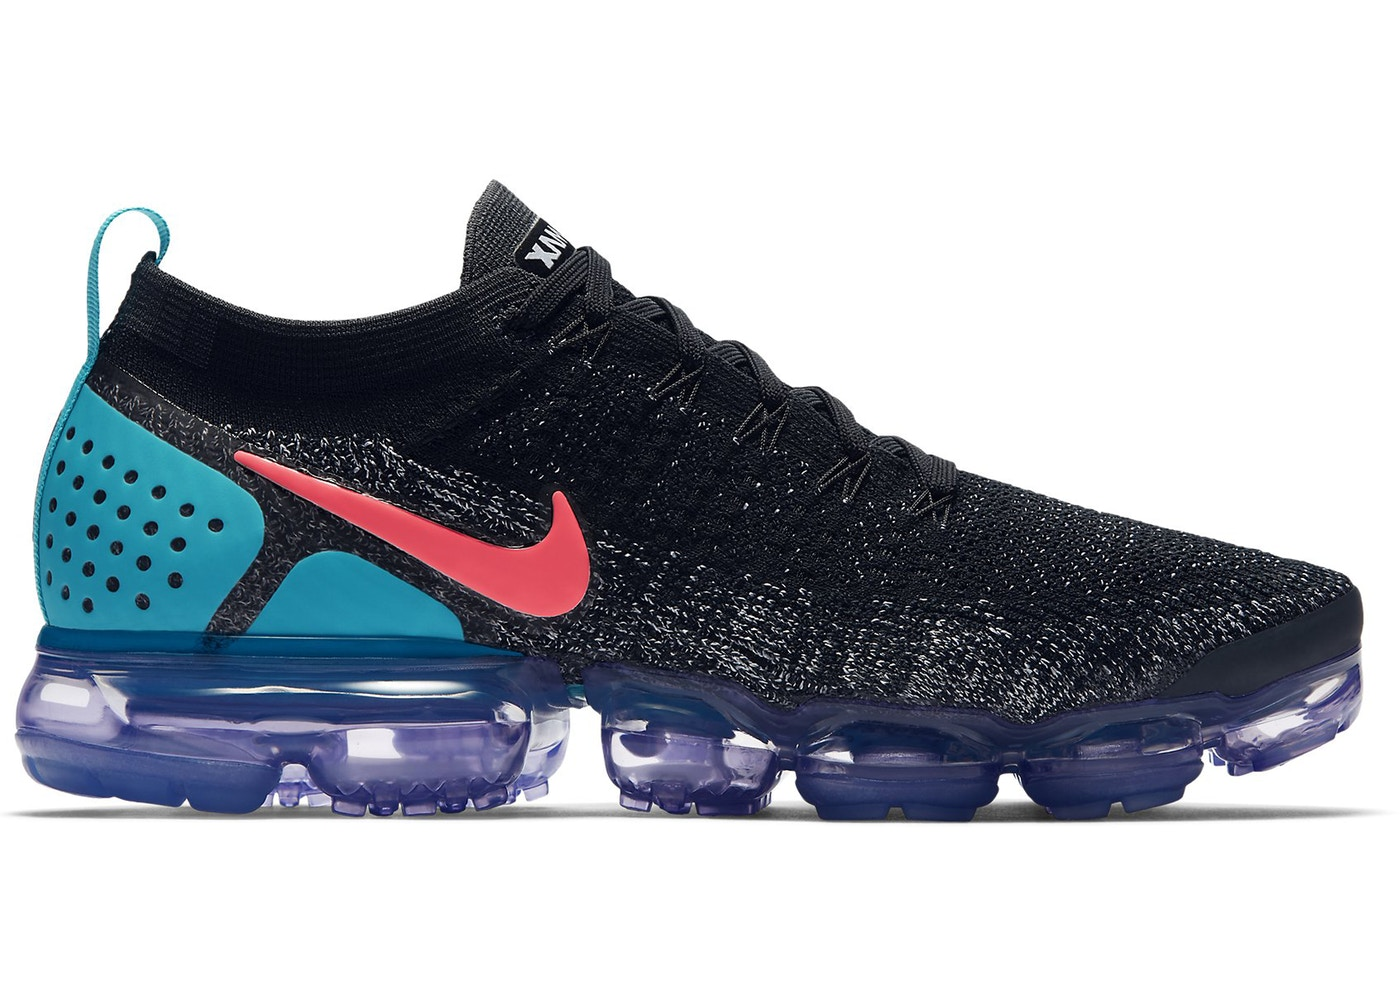 70a5808657d1 Air VaporMax 2.0 Black Hot Punch - 942842-003